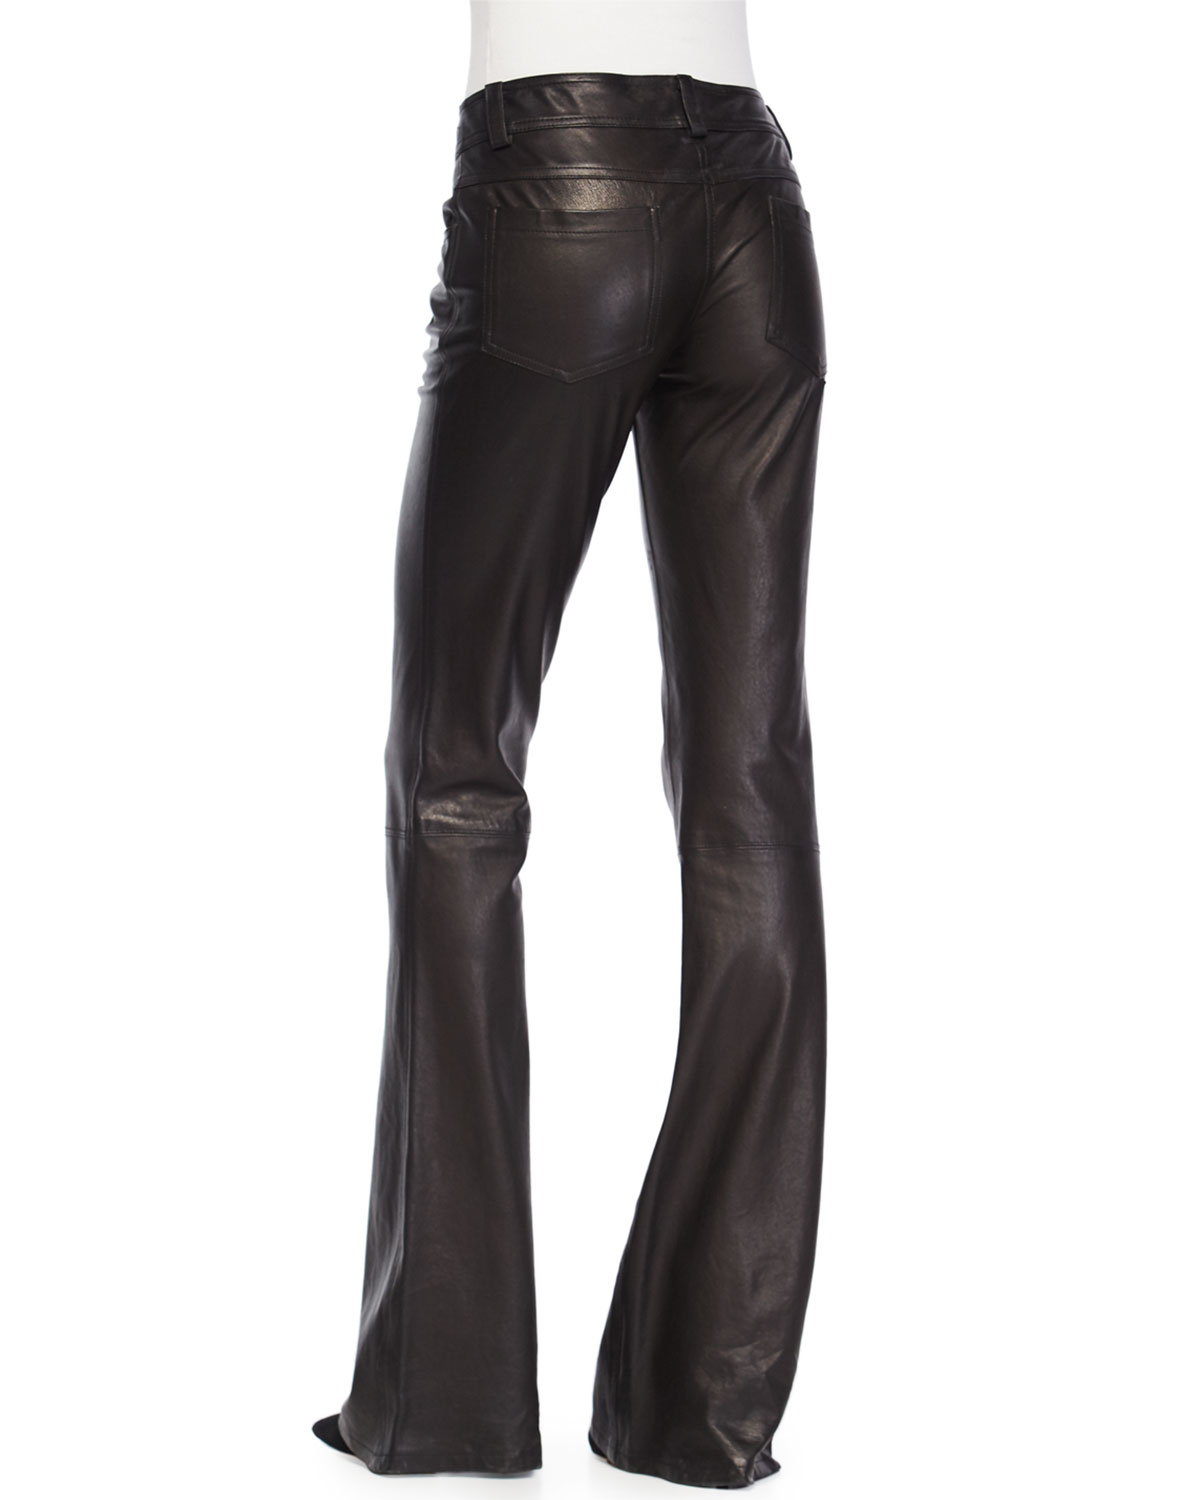 More Details Veronica Beard Hibiscus High-Rise Flare Pants, Black Details Veronica Beard